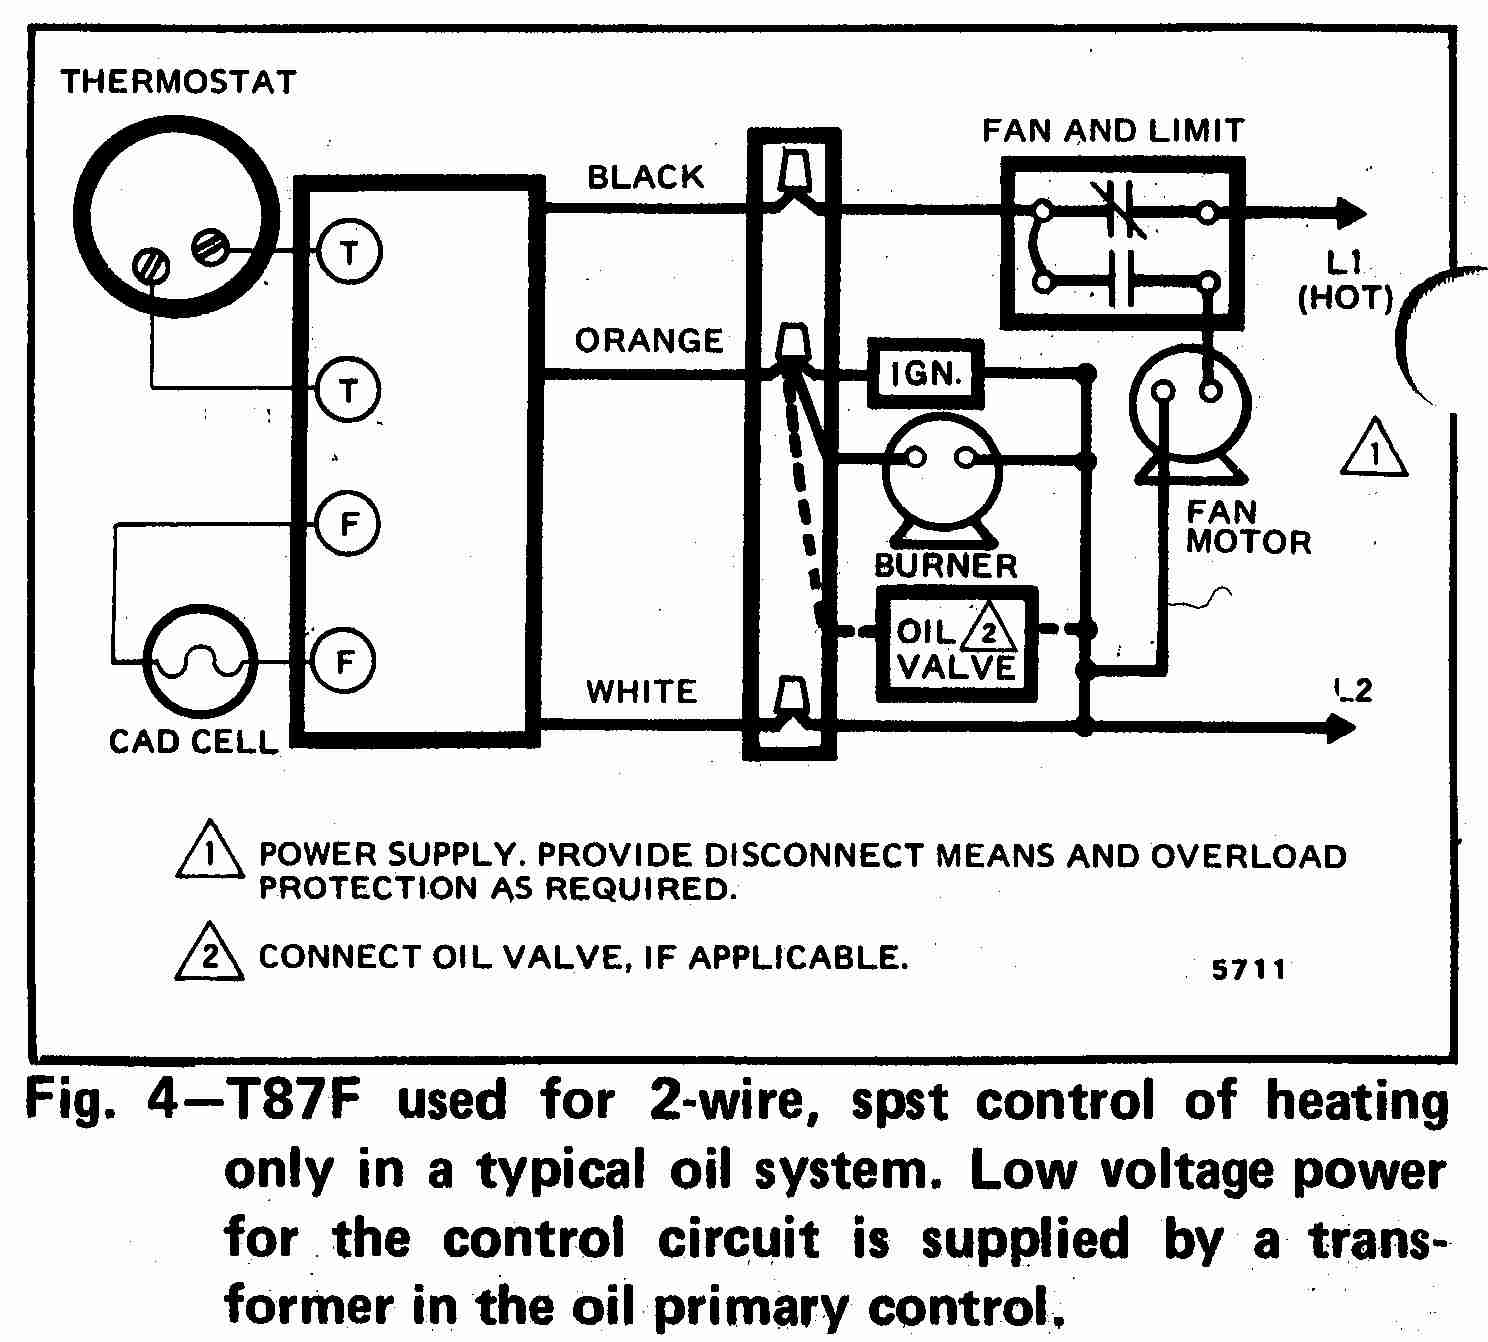 TT_T87F_0002_2W_DJF room thermostat wiring diagrams for hvac systems Honeywell Thermostat Wiring Diagram at reclaimingppi.co